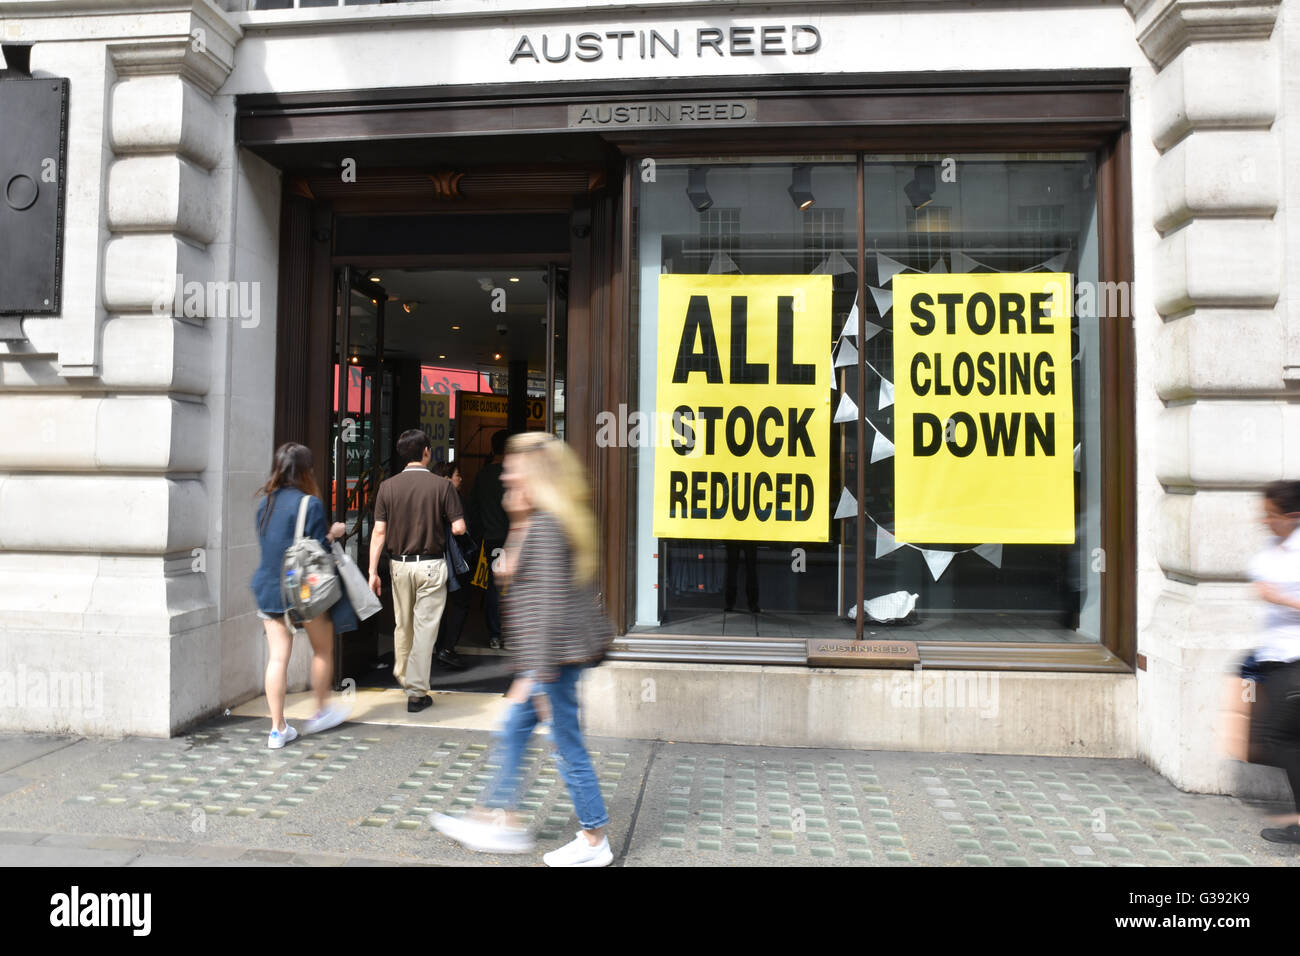 Austin Reed Store Closing Down High Resolution Stock Photography And Images Alamy